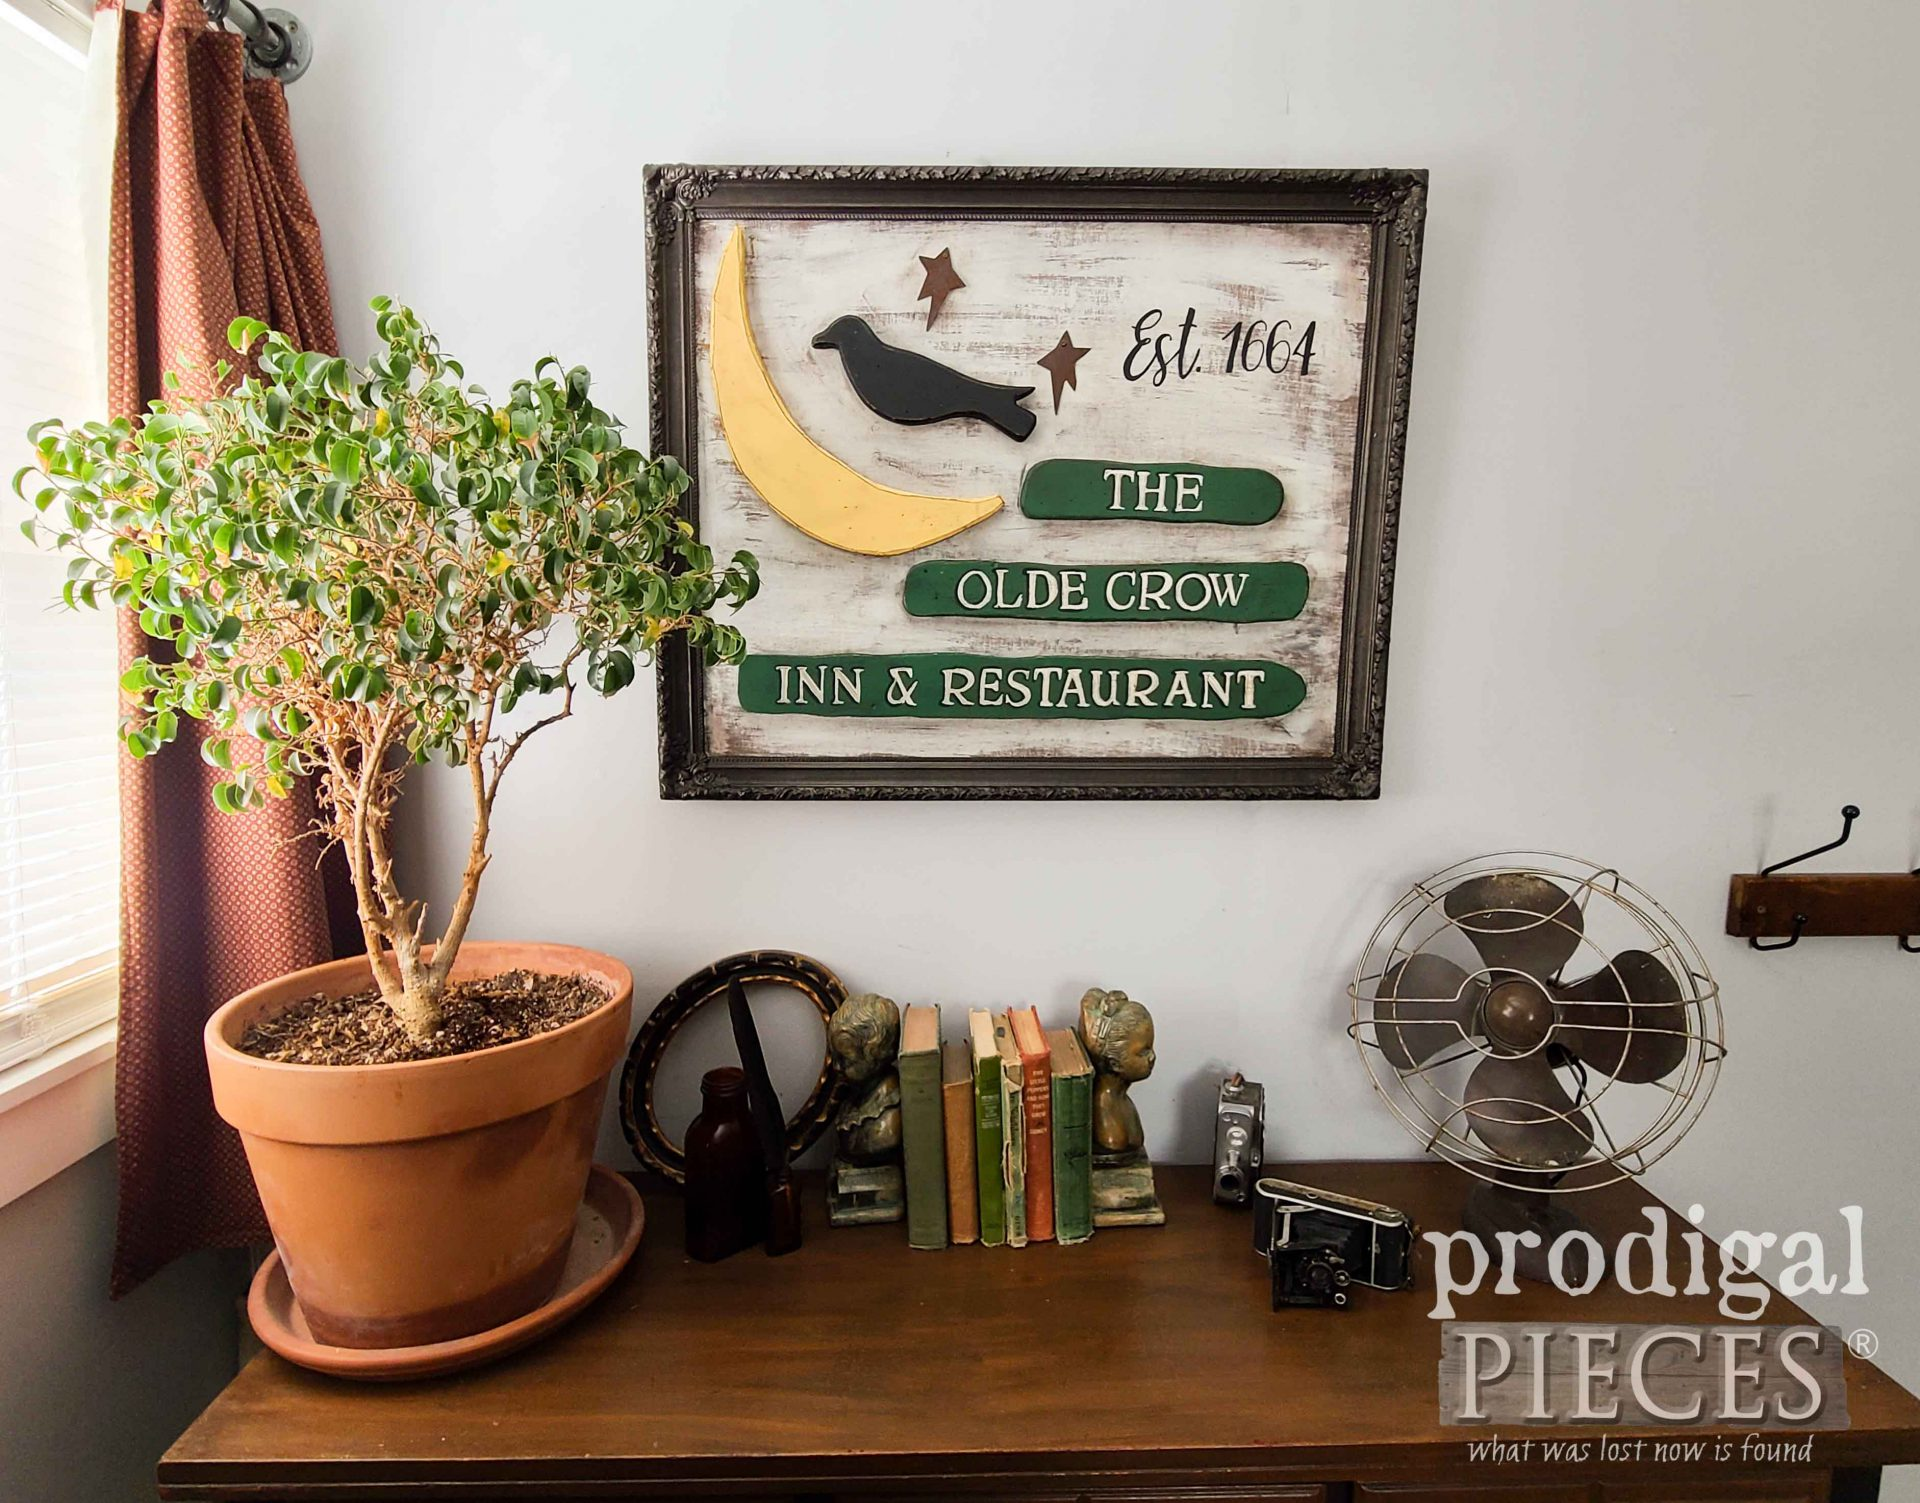 DIY Repurposed Antique Sign from Dated Fall Decor by Larissa of Prodigal Pieces | prodigalpieces.com #prodigalpieces #diy #home #homedecor #farmhouse